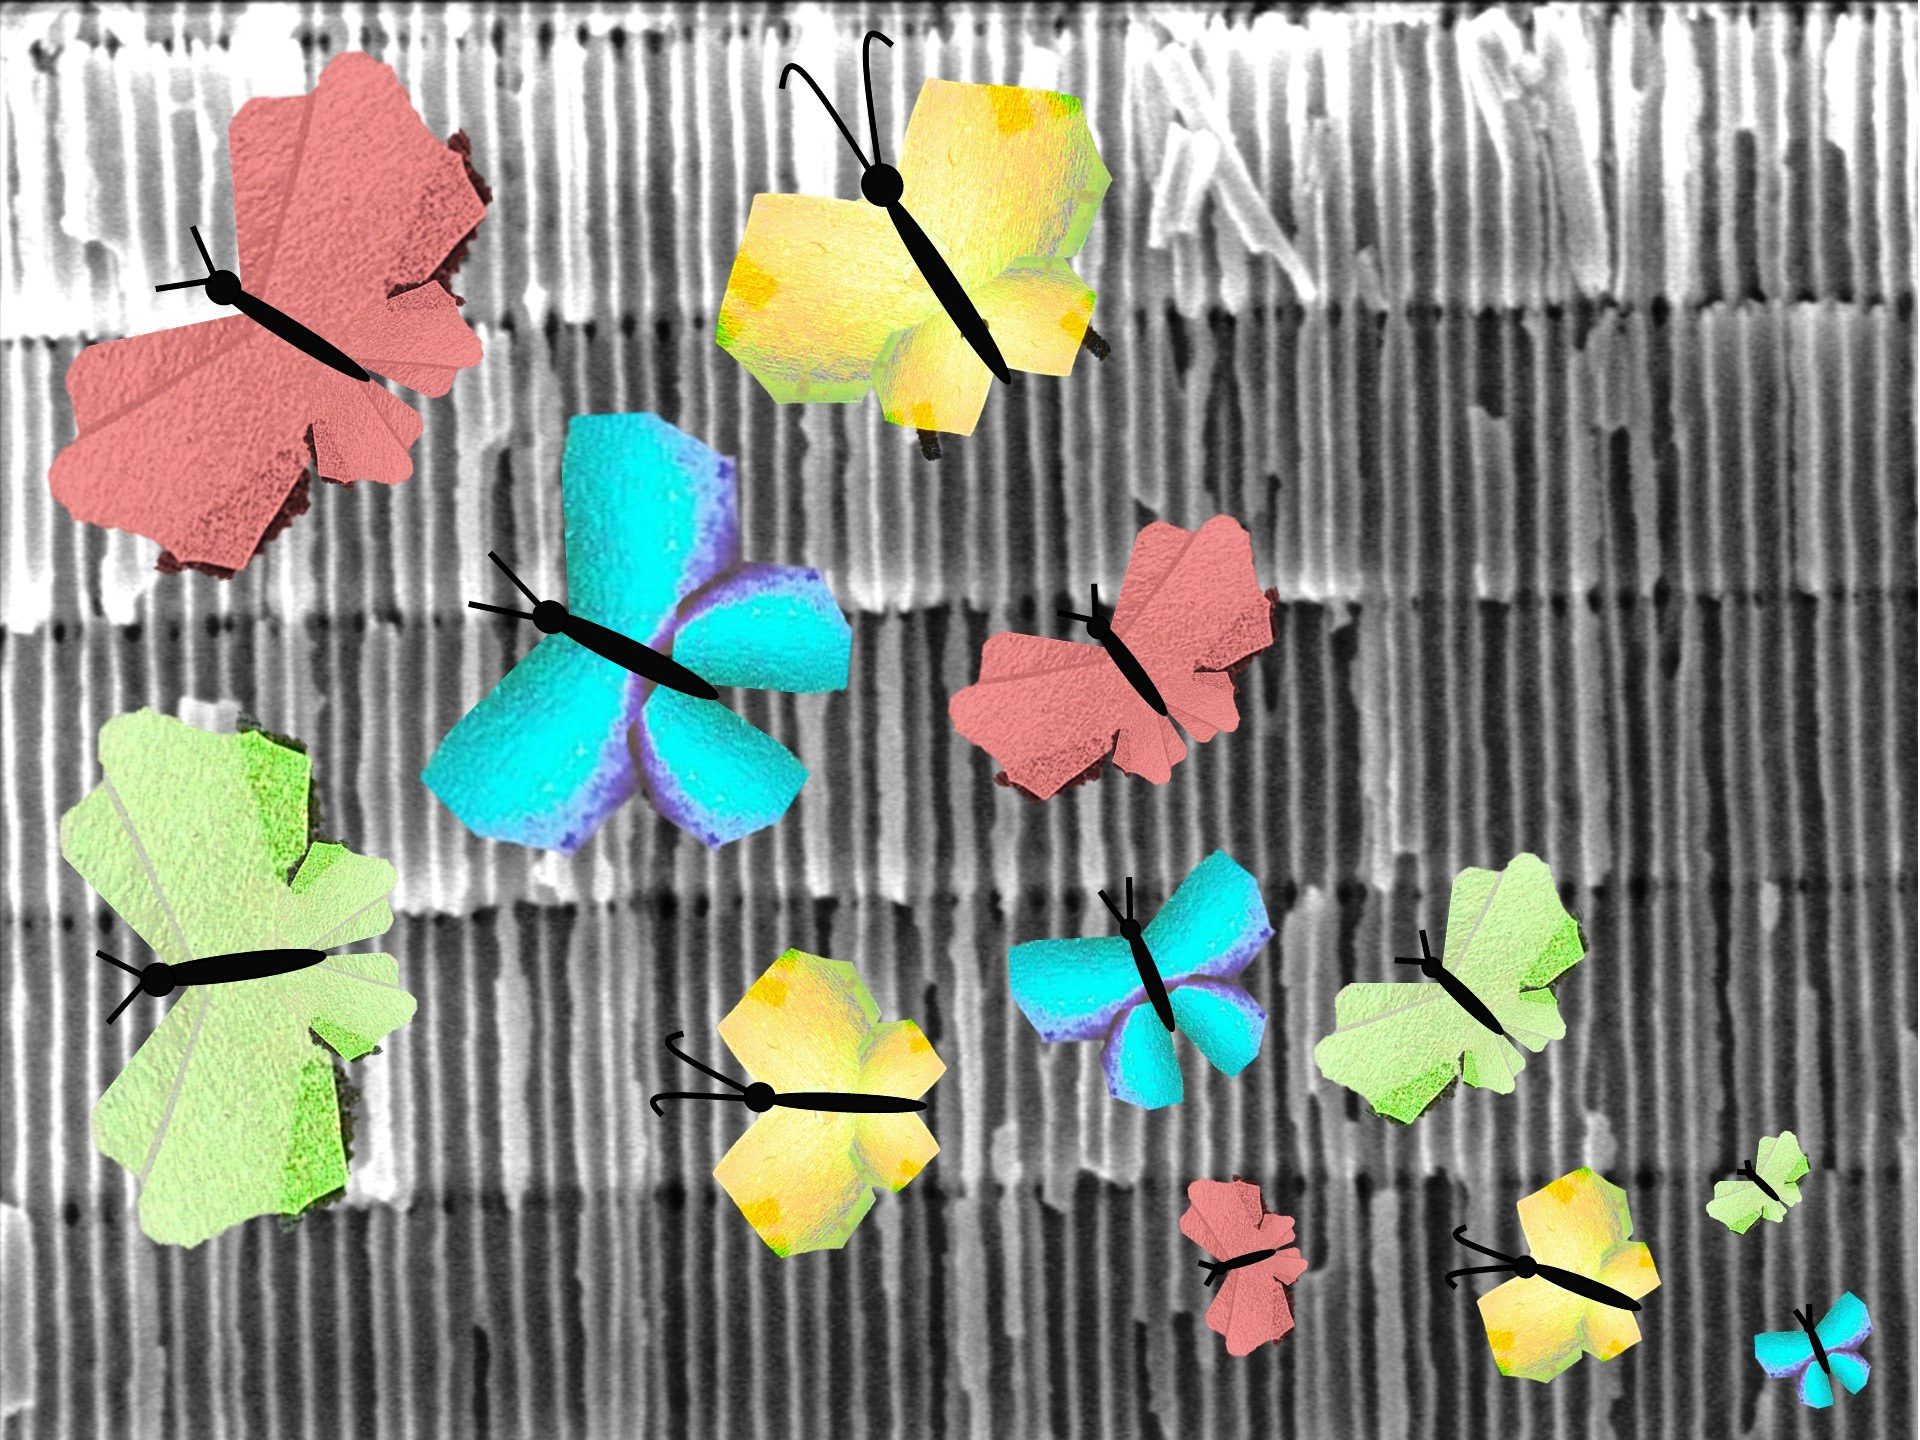 Intricate meso-scale internal structure of the all-dielectric porous metamaterials enables structural color formation akin to that displayed by colorful butterfly wings